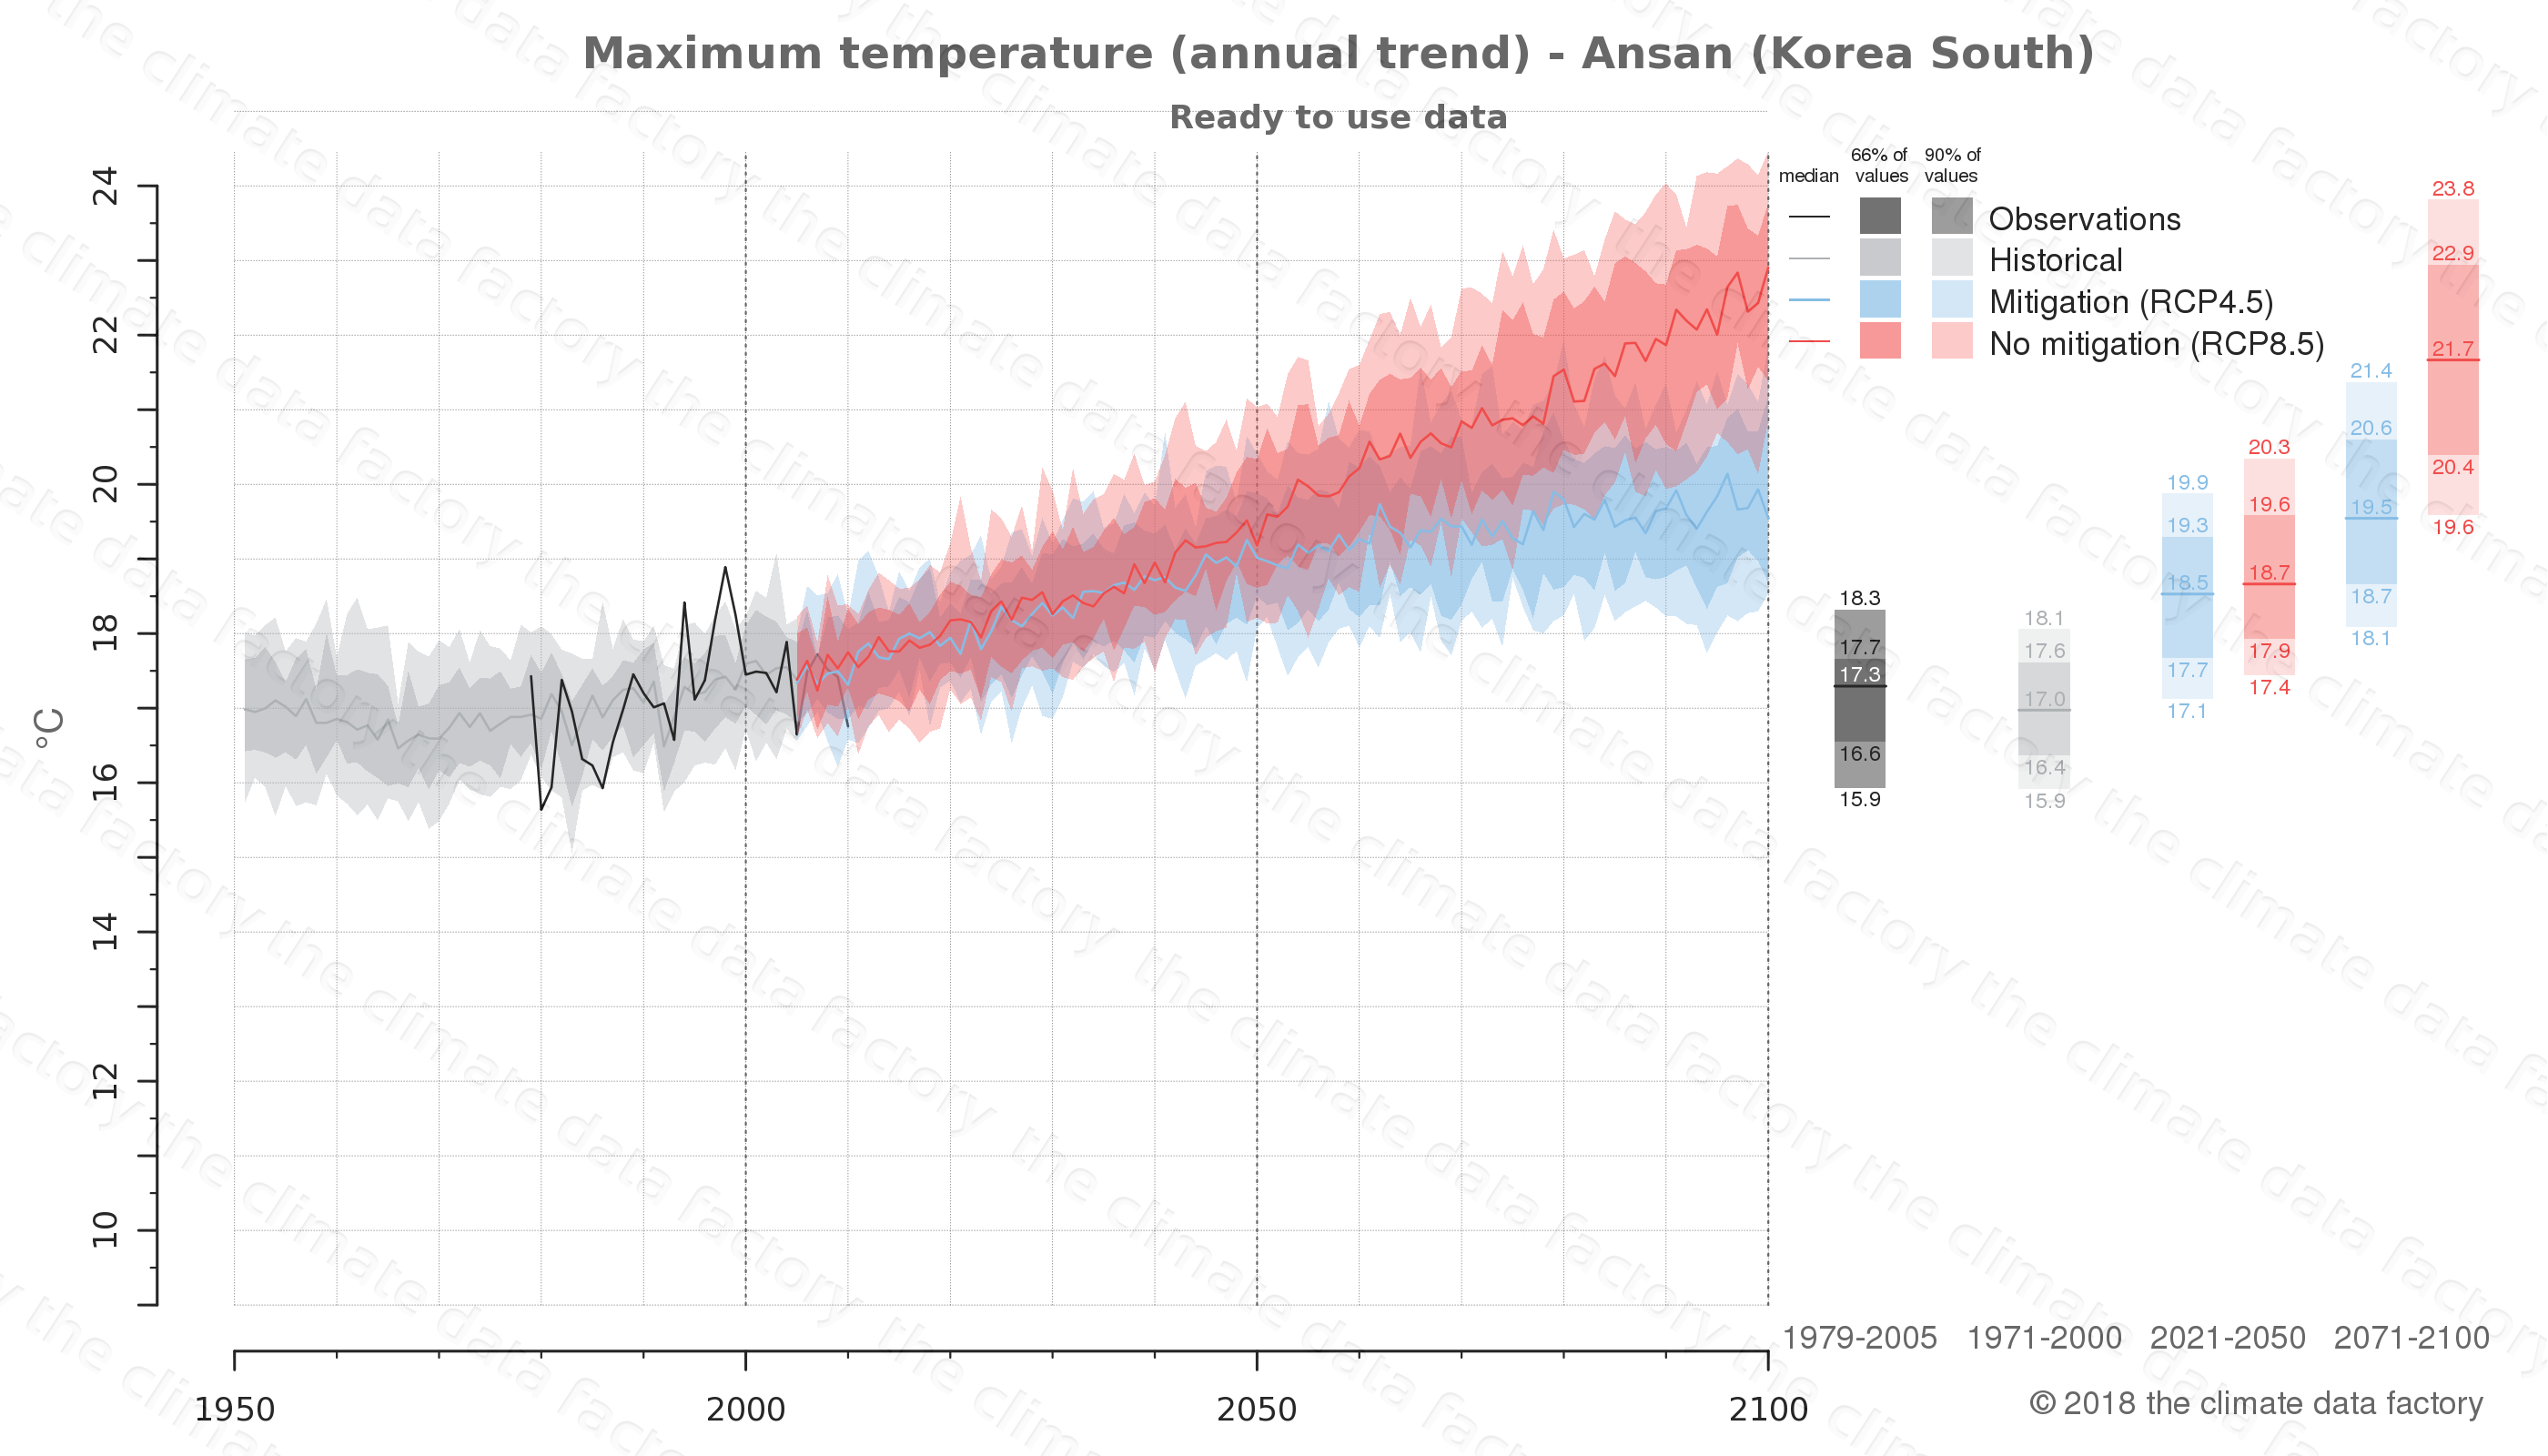 climate change data policy adaptation climate graph city data maximum-temperature ansan south korea